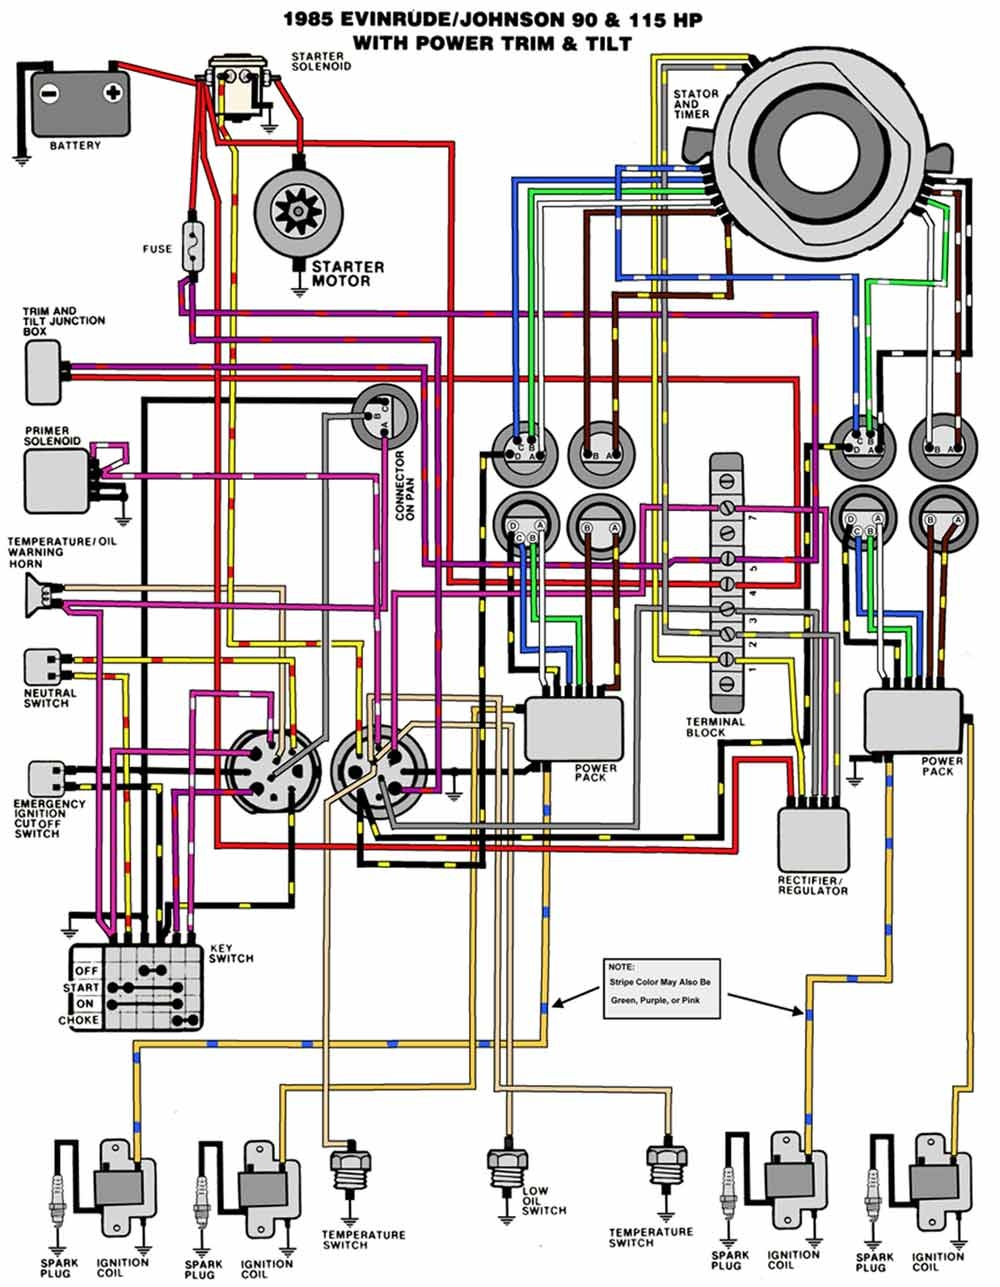 mercury outboard ignition switch wiring diagram | free ... wiring diagram for mercury ignition switch